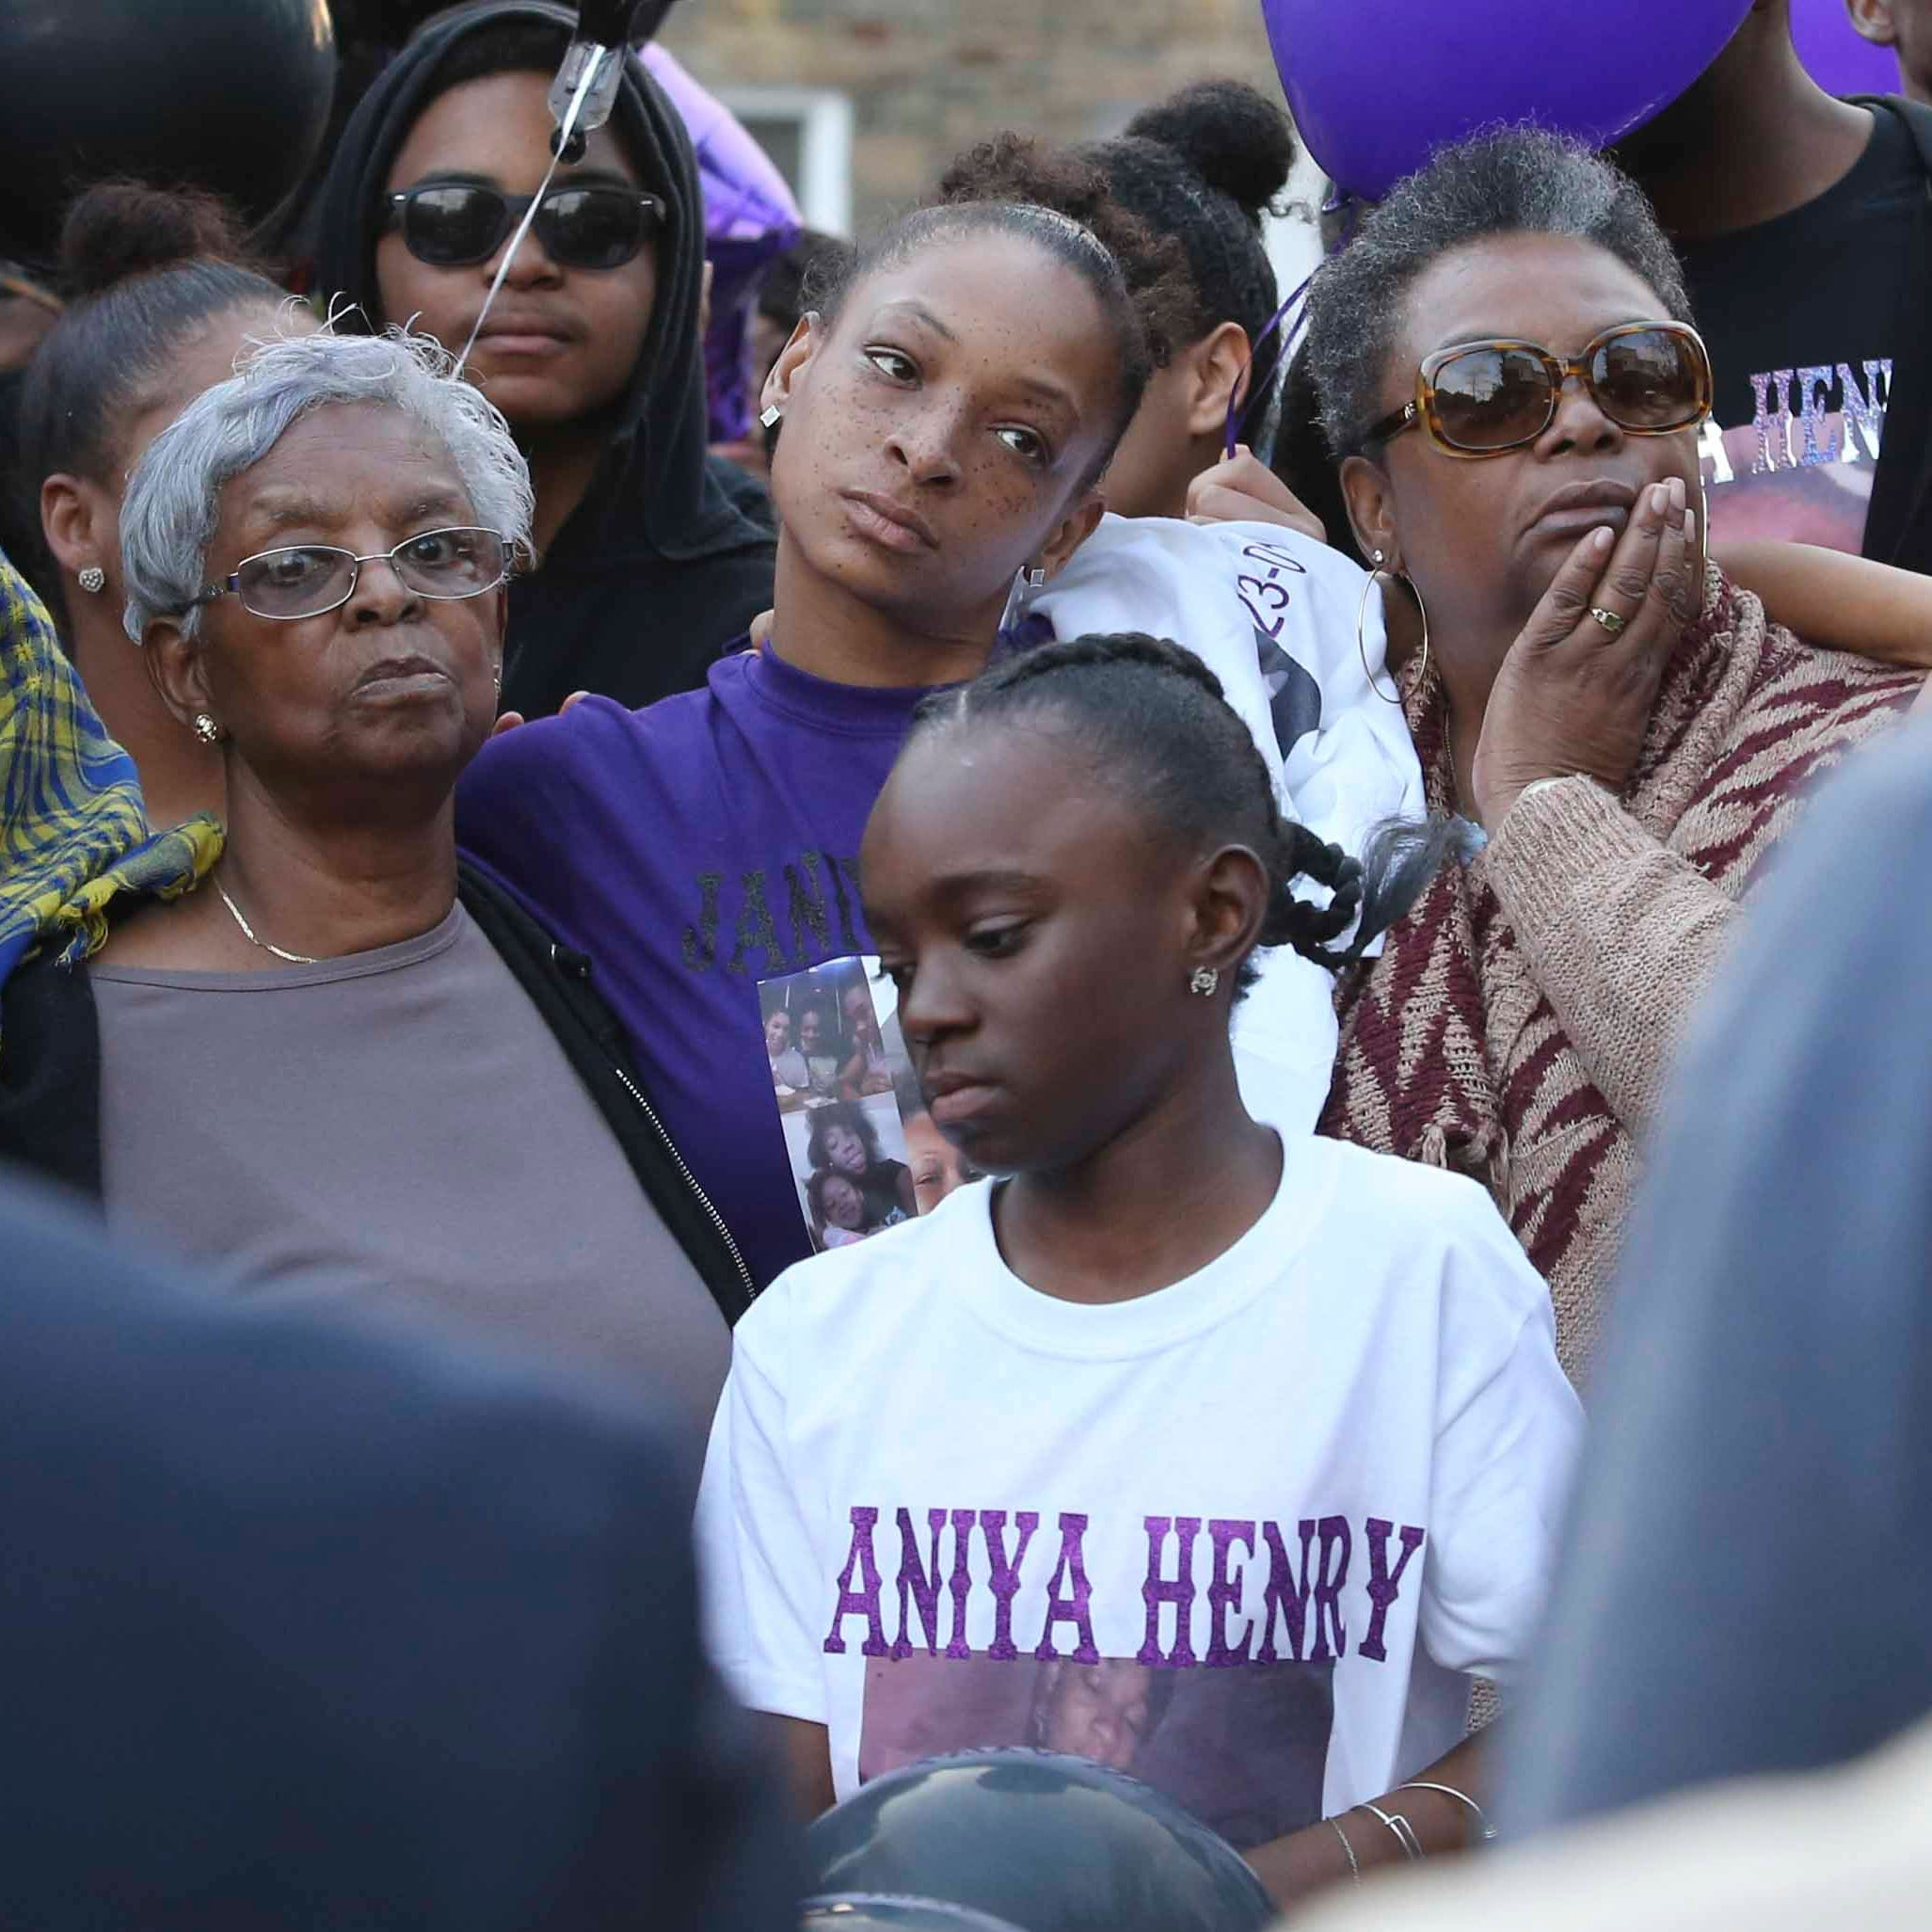 Slain Wilmington teen mom Janiya Henry remembered